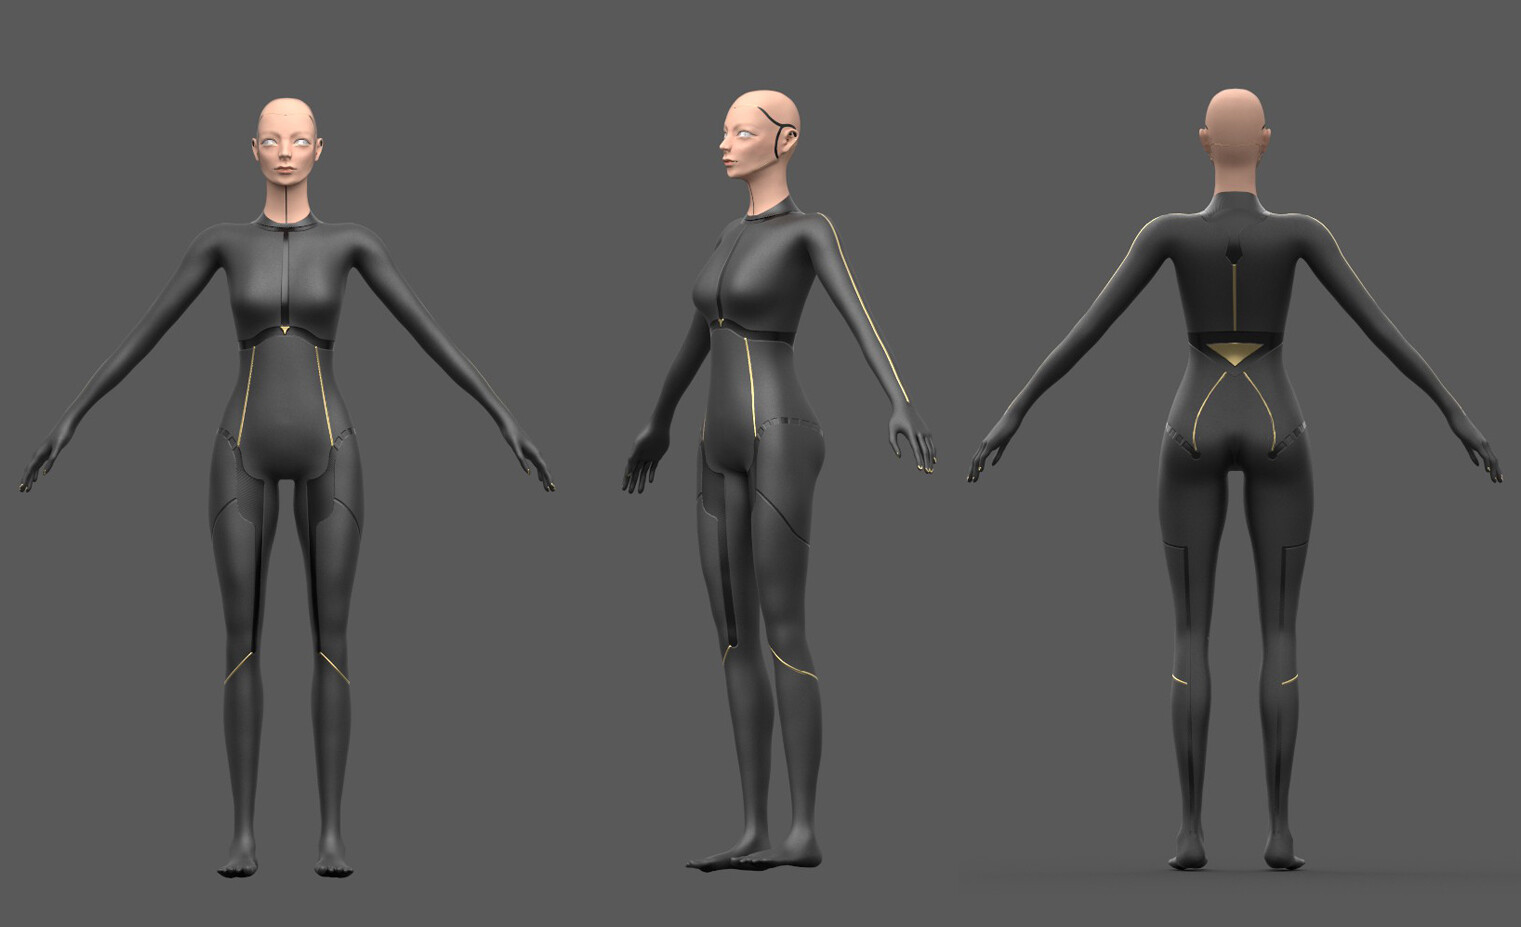 Early android body. It was later fixed into a mutual grey color for less distraction from the clothes.